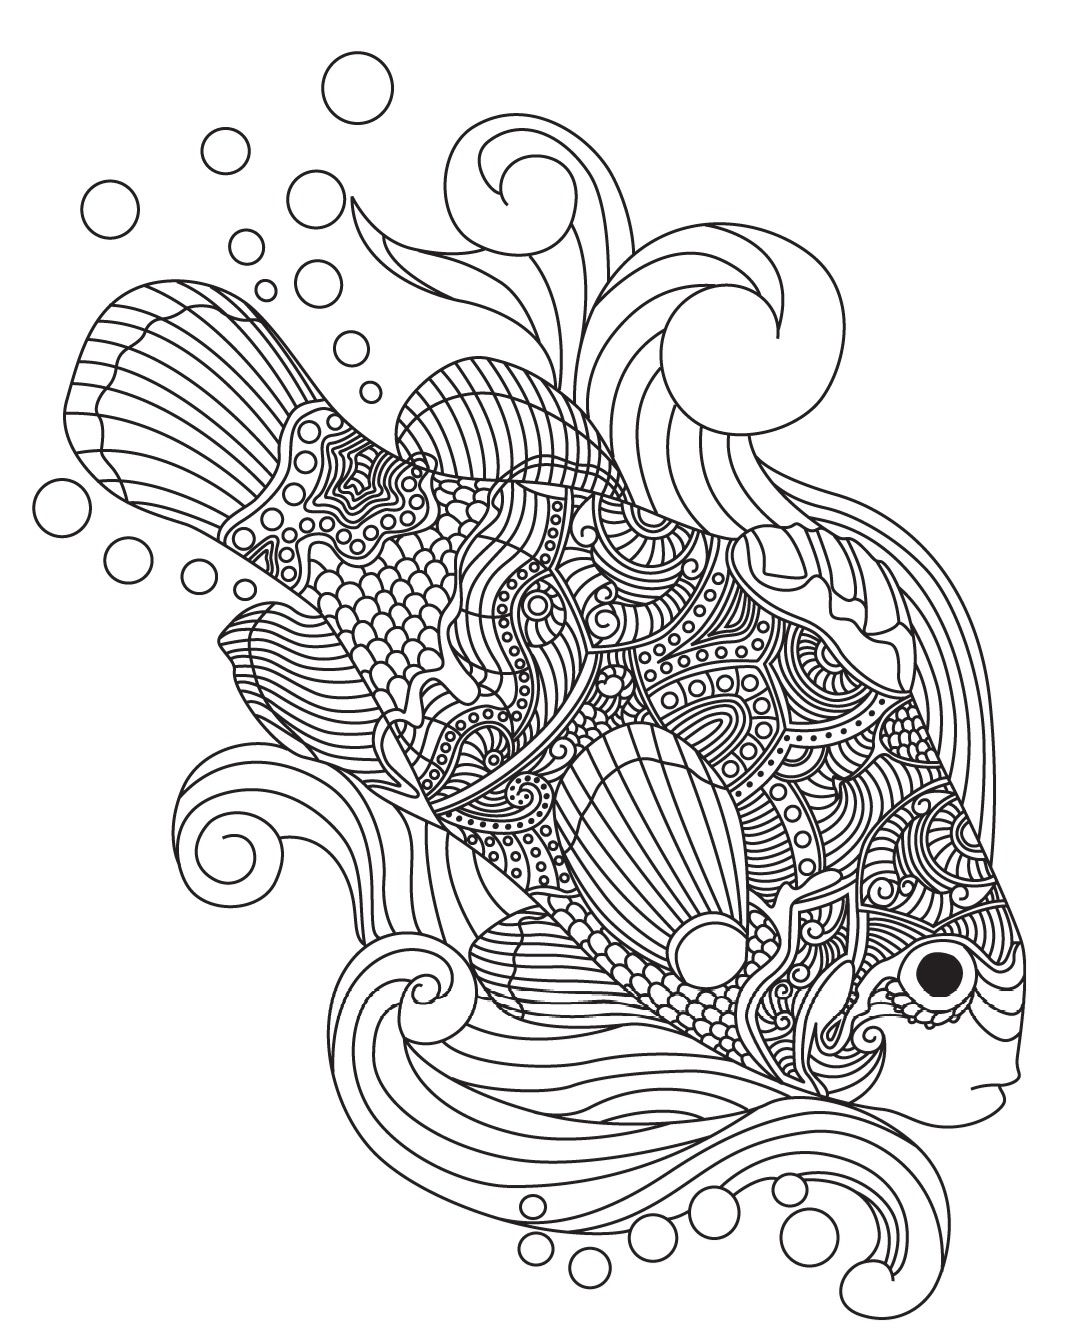 Fish | Colorish: coloring book for adults mandala relax by ...